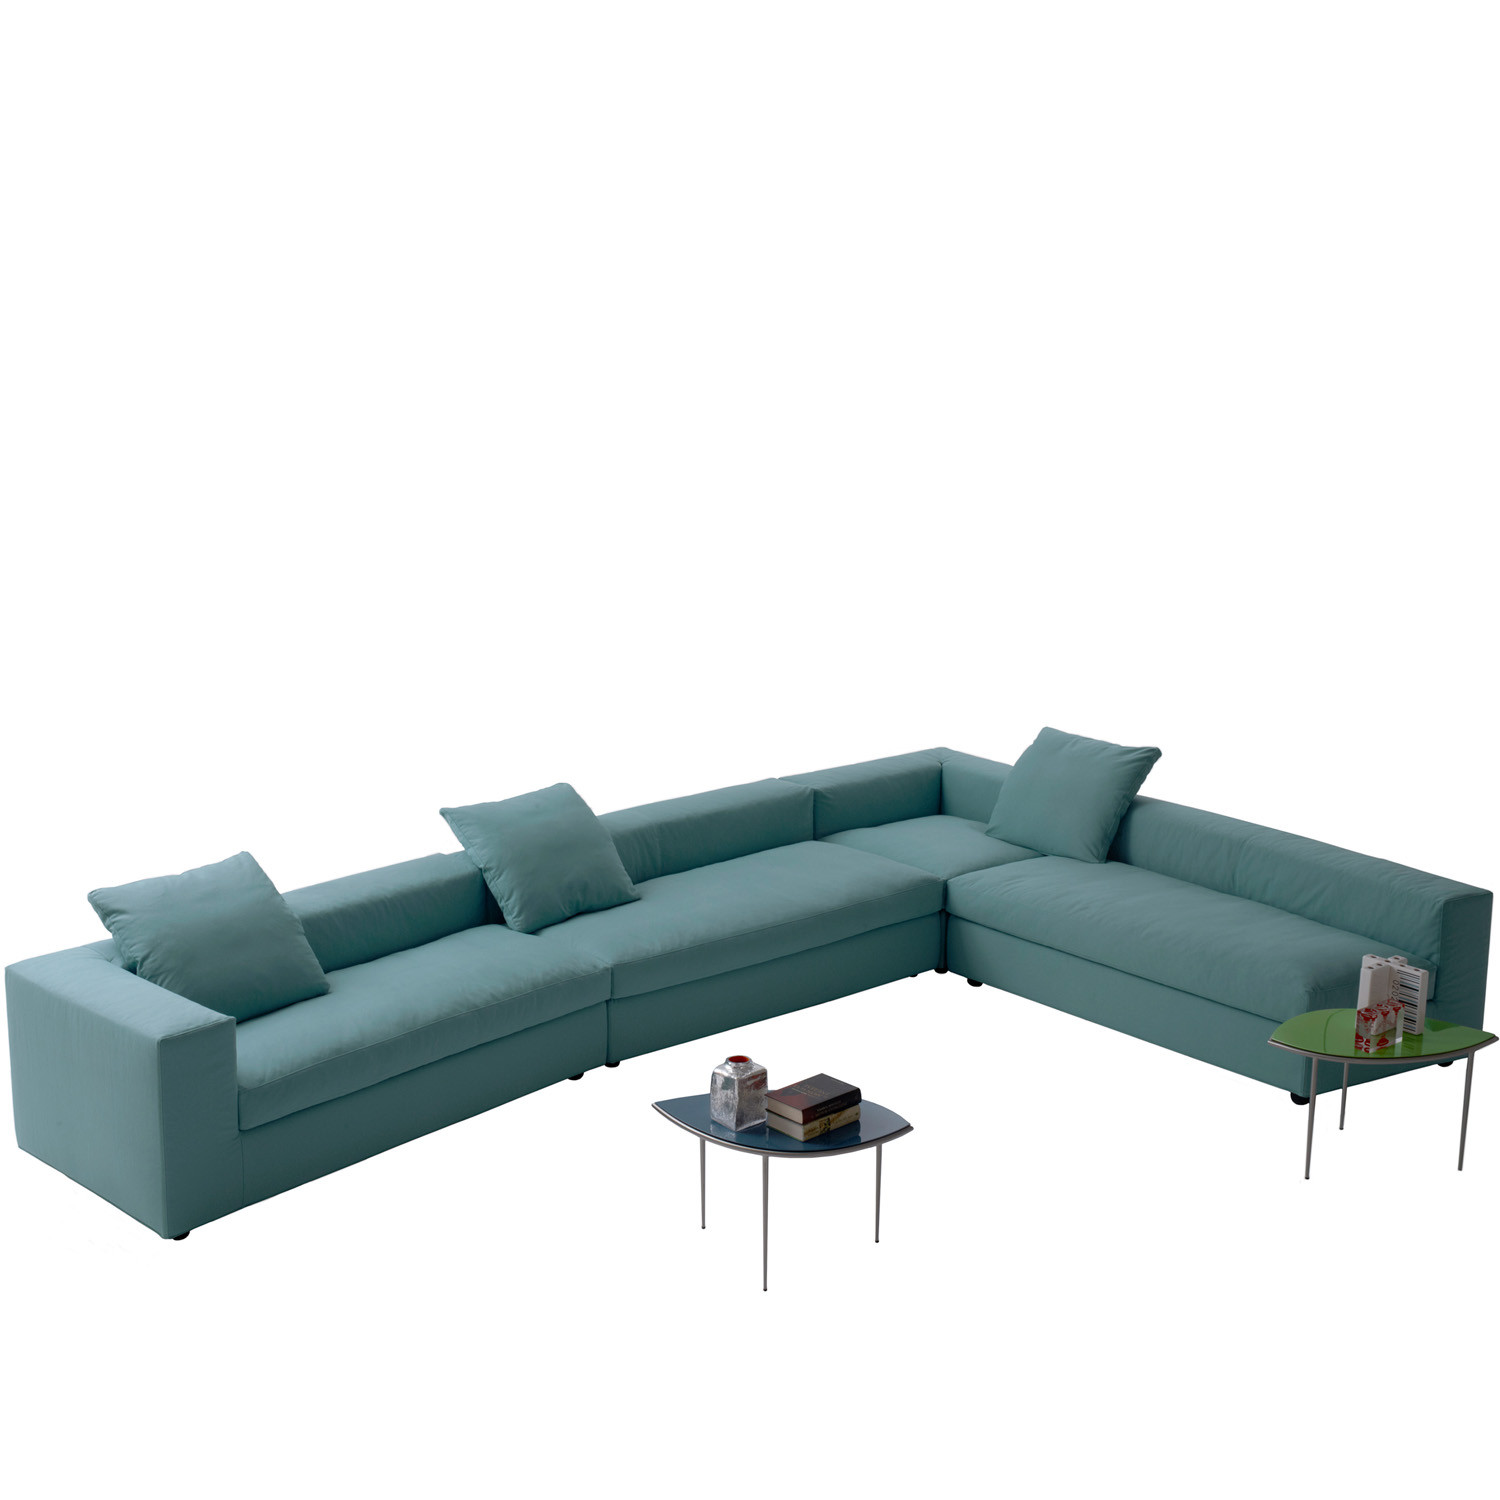 Cuba 25 Modular Seating by Cappellini